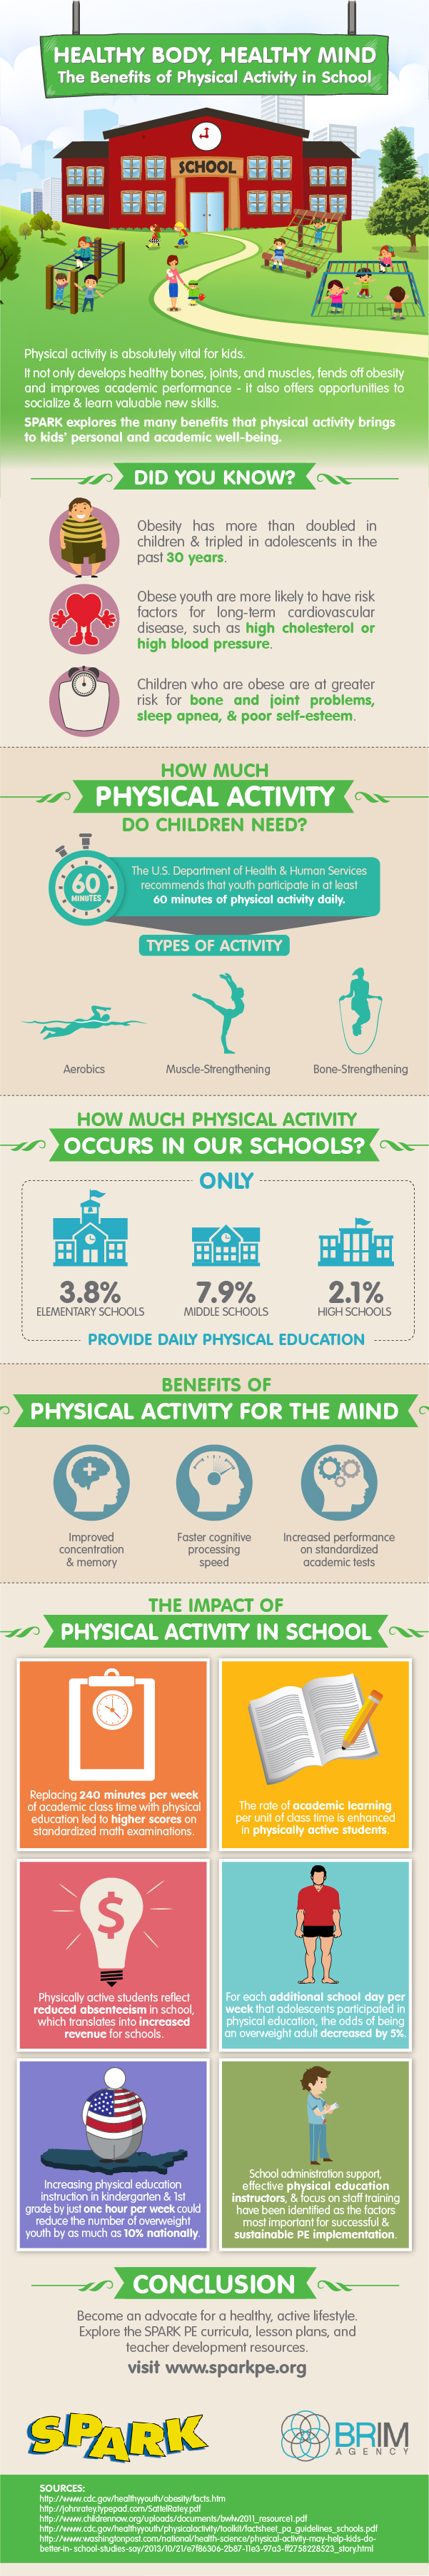 Infographic Highlights Benefits of Physical Activity in Schools